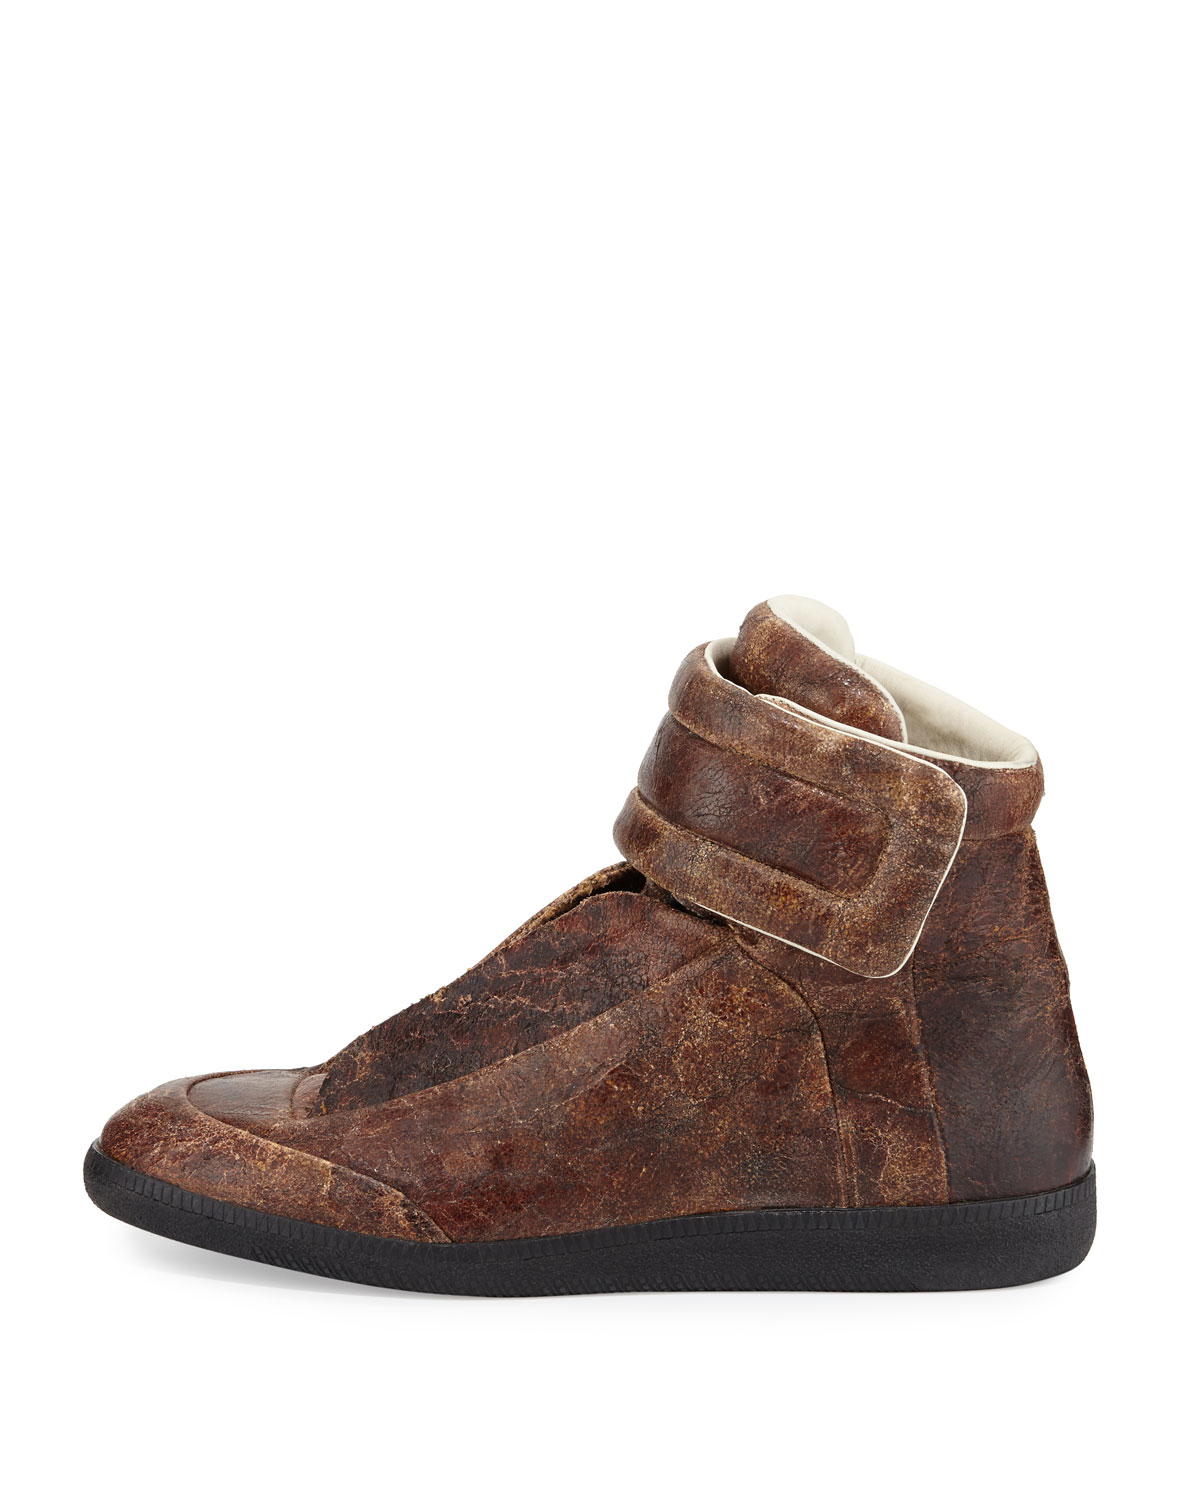 Maison margiela future ankle in brown for men lyst for Maison de margiela